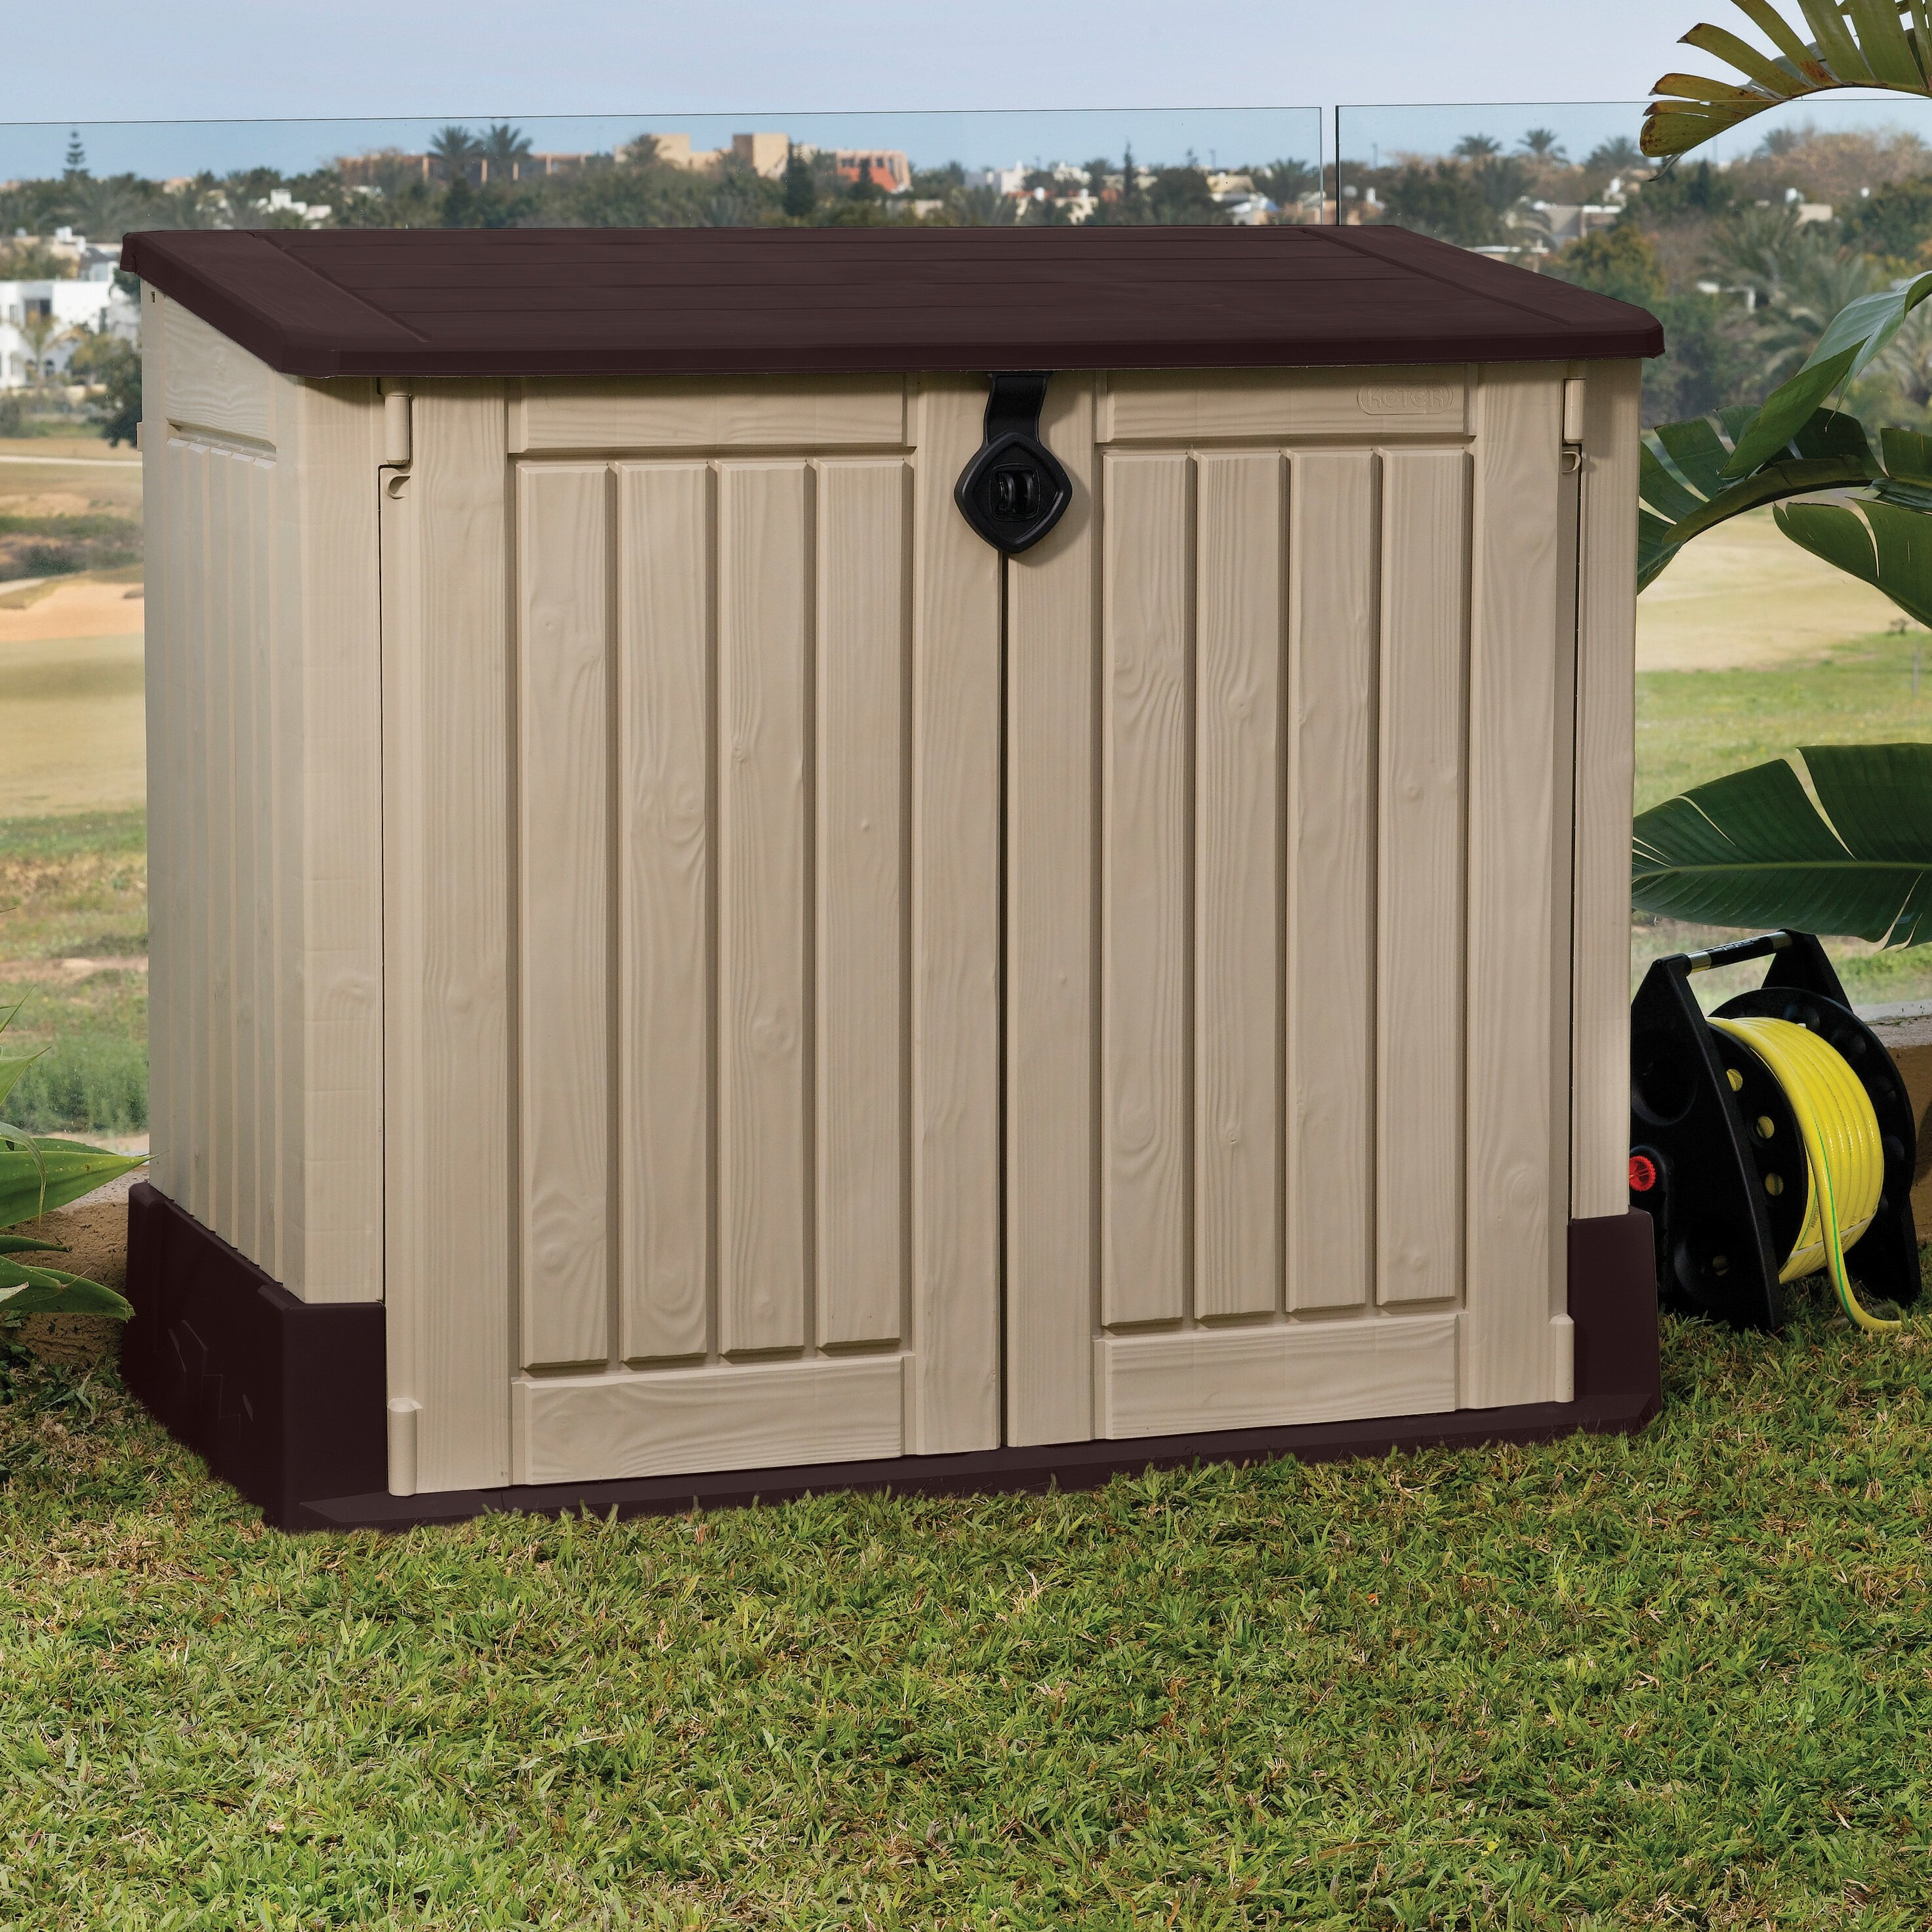 shed approve news brodco police garden from secure buy a rubbish sheds daylightsecure made